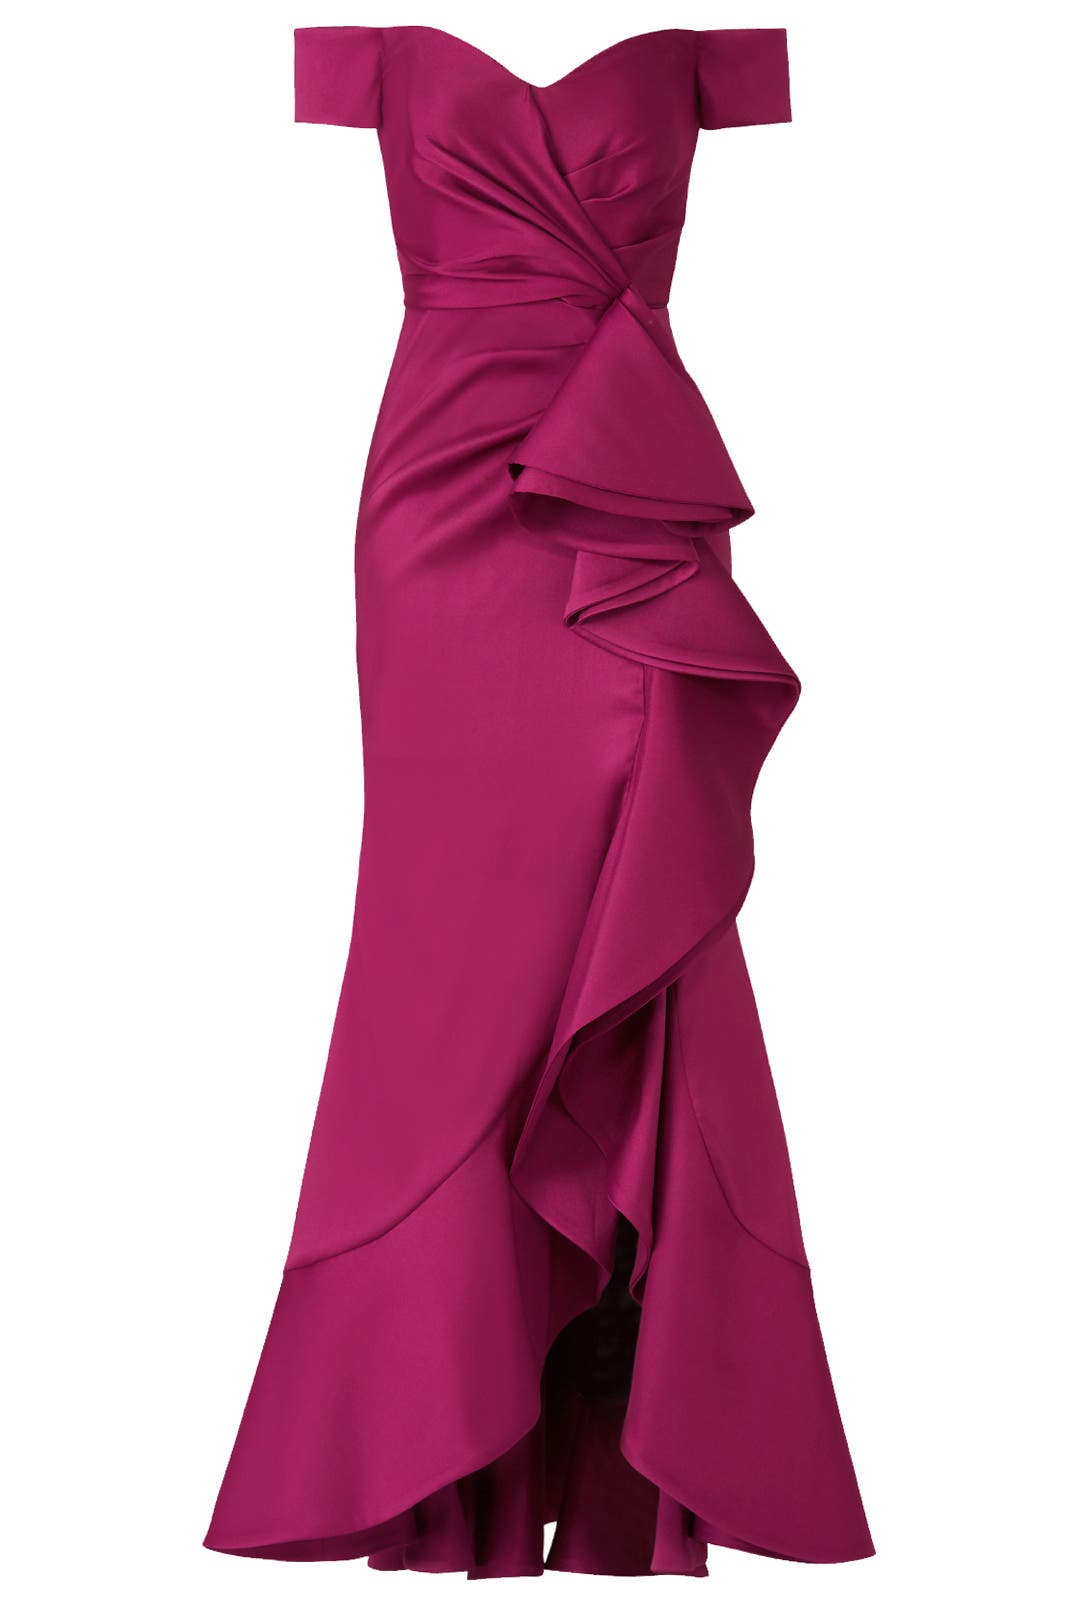 Sangria Ruffle Gown by Badgley Mischka for $140 | Rent the Runway